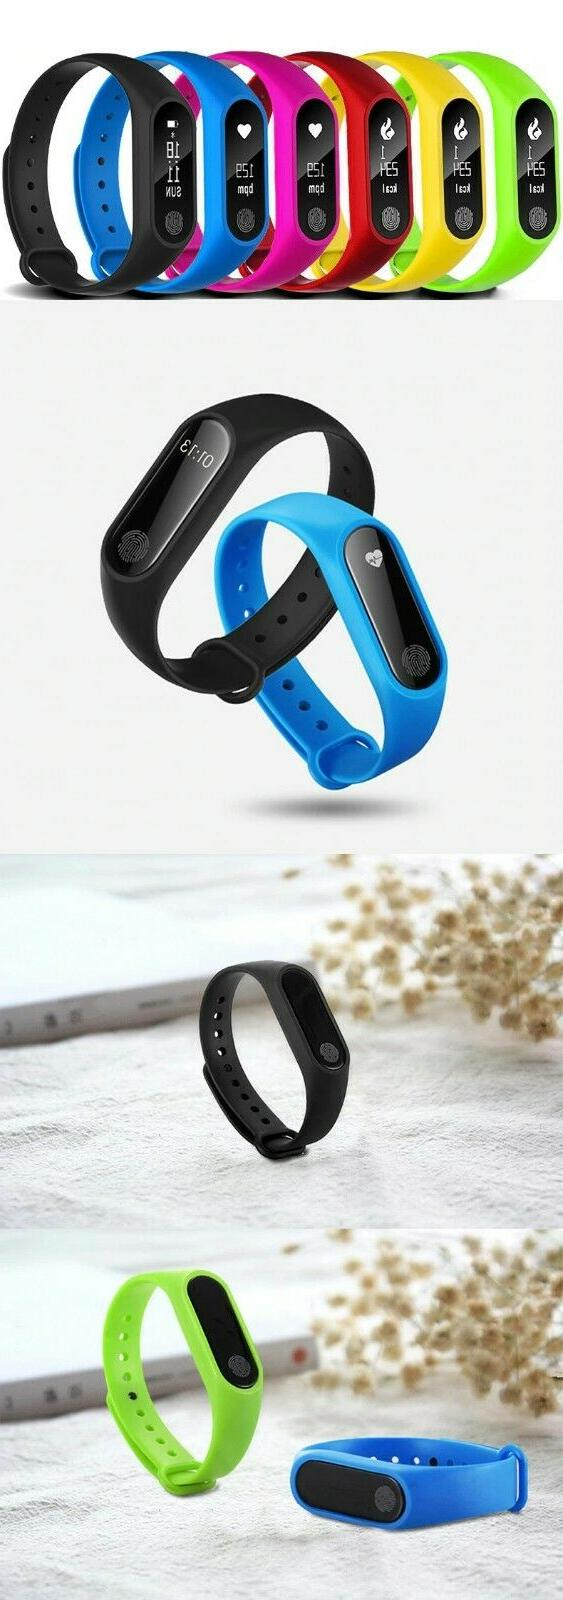 fitness smart watch activity tracker heart rate